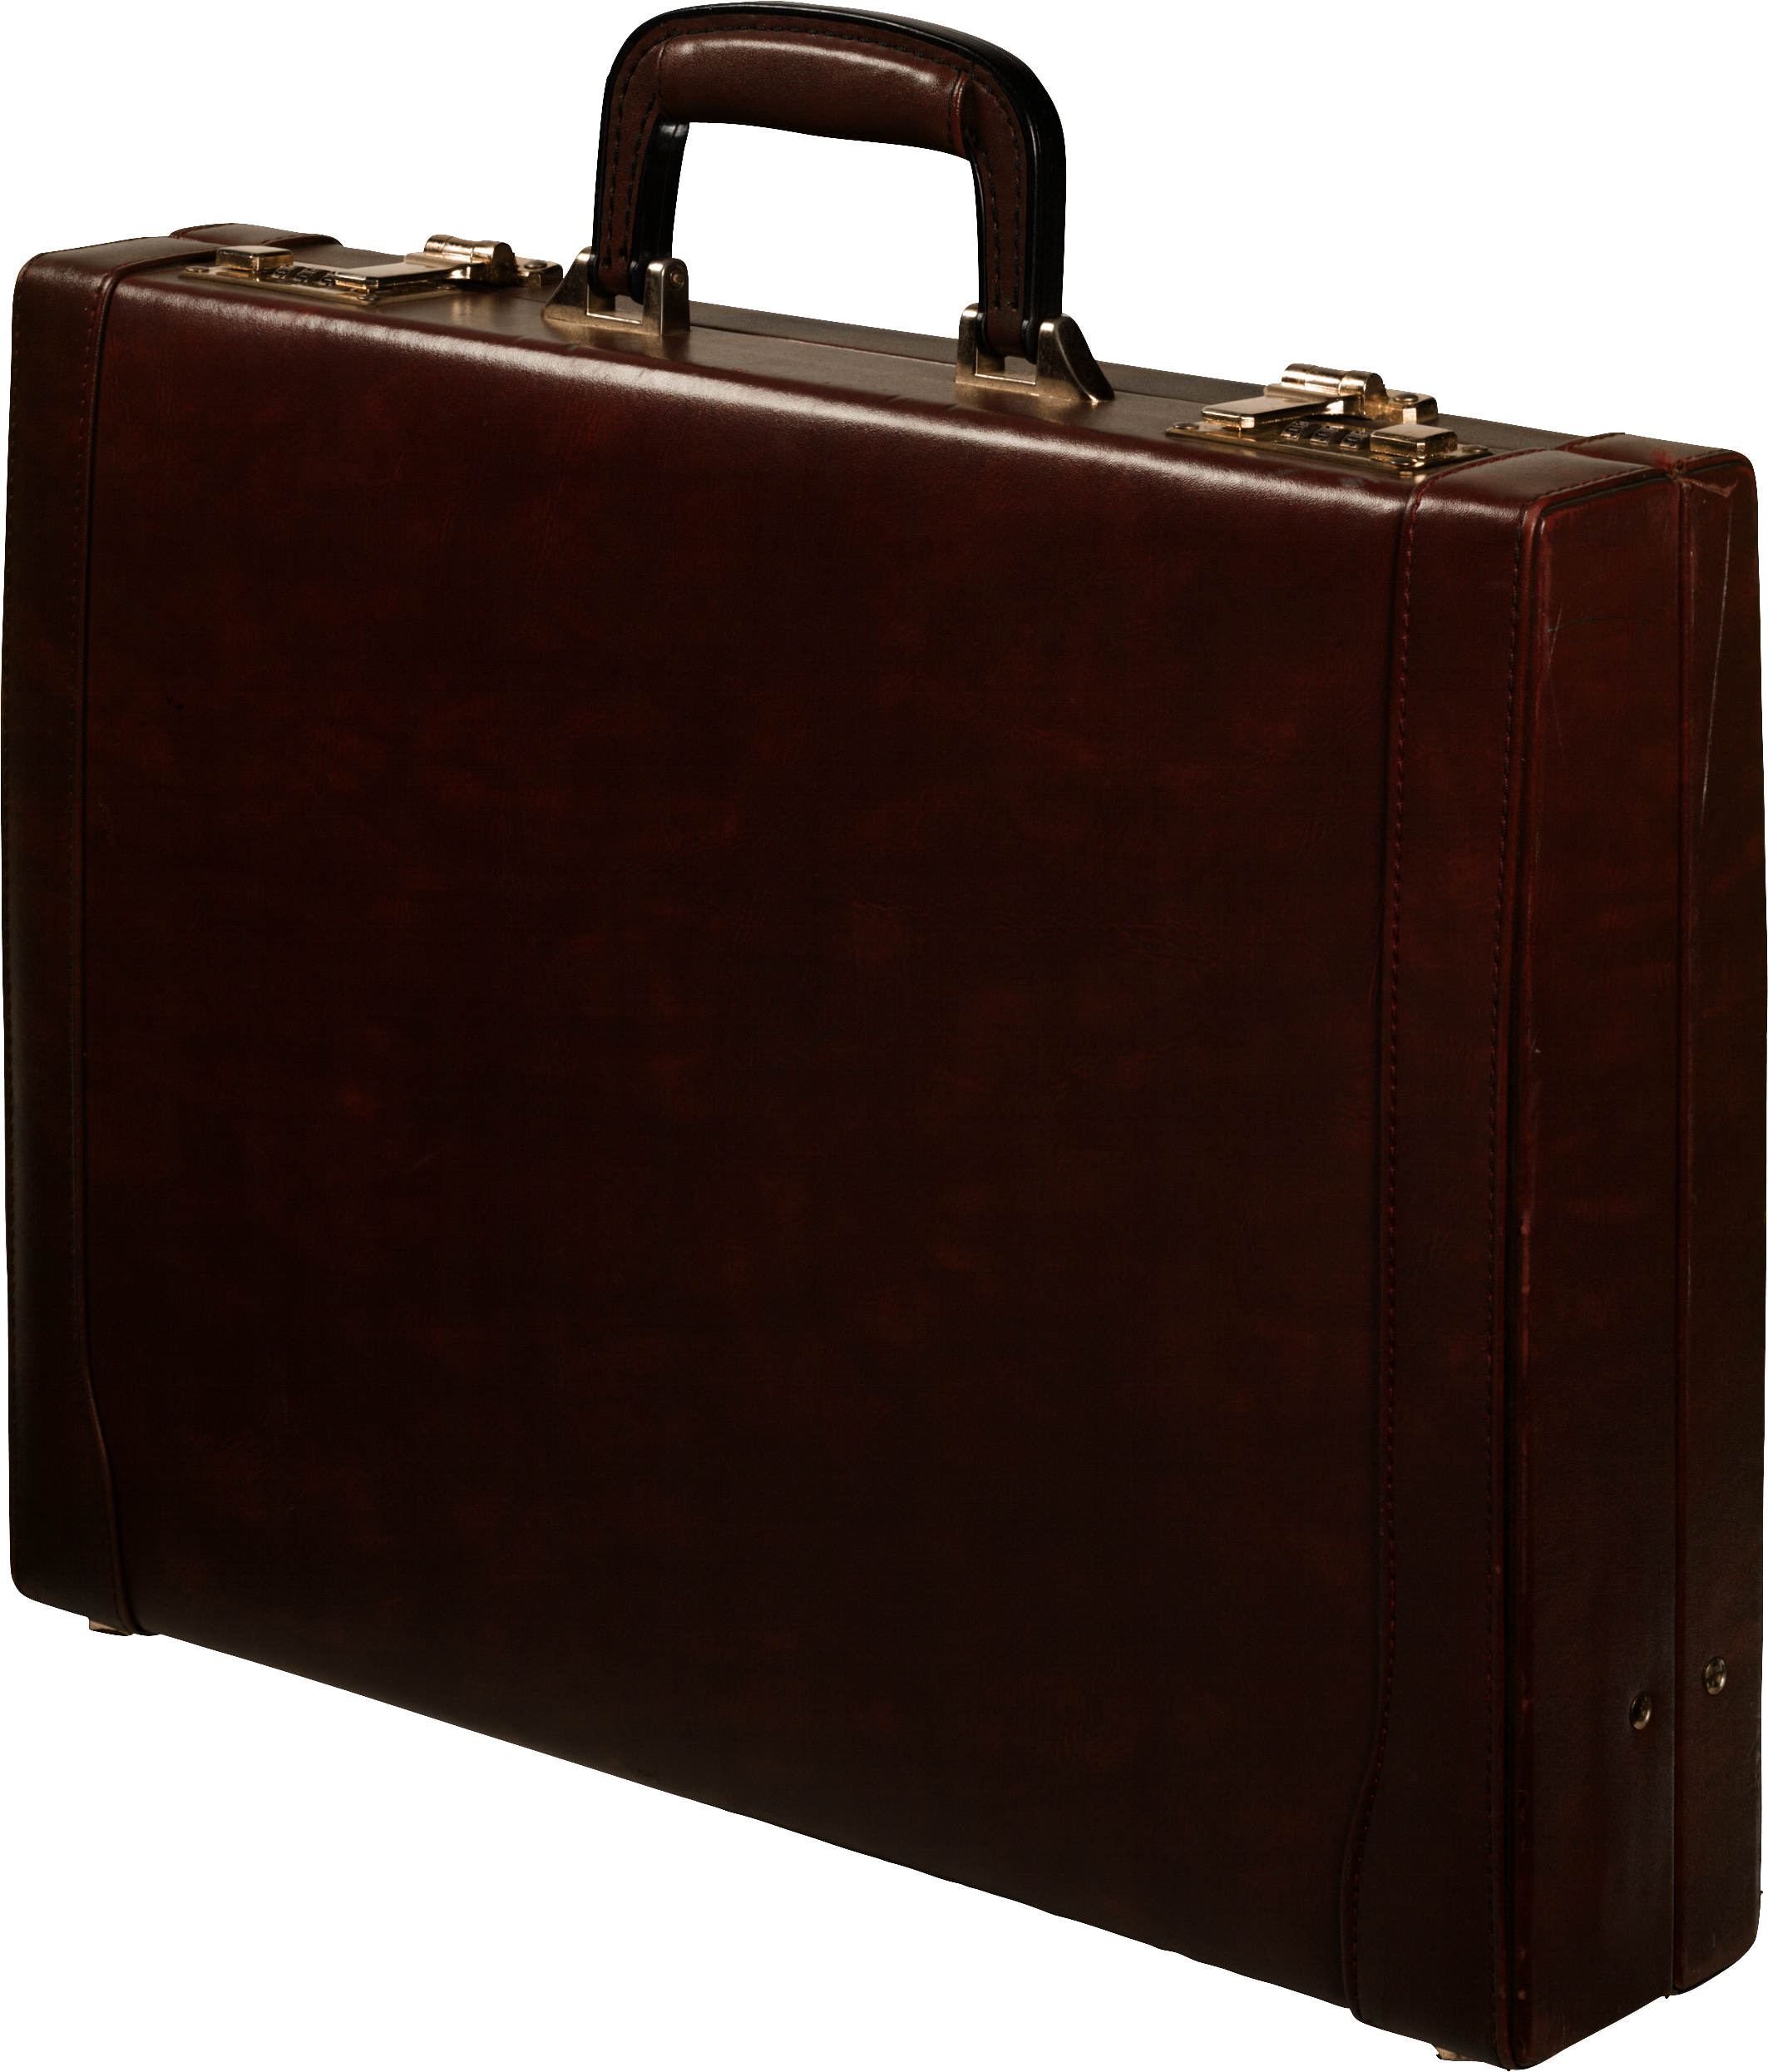 Suitcase PNG - 2551